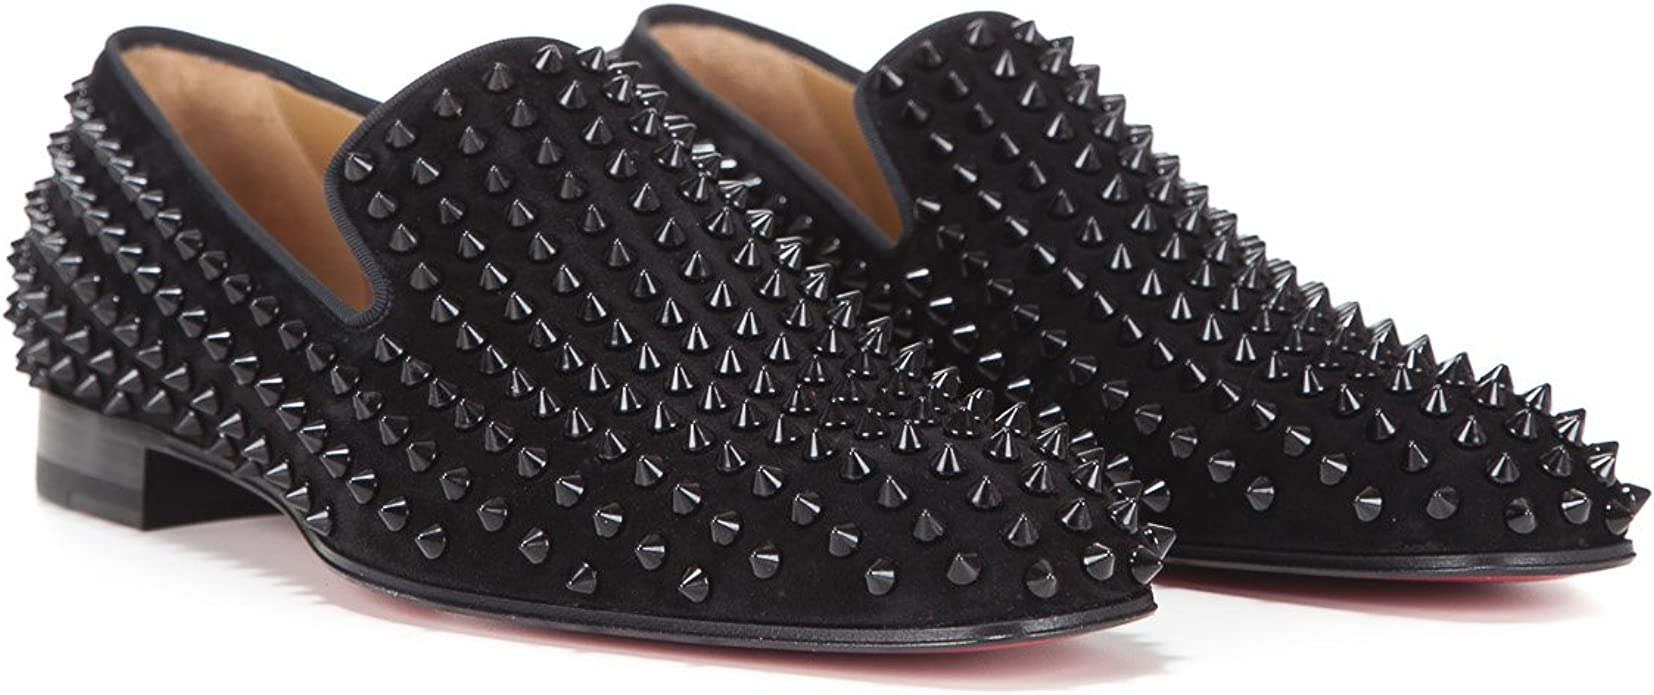 Christian Louboutin, Mocassini Uomo Nero Nero IT Marke